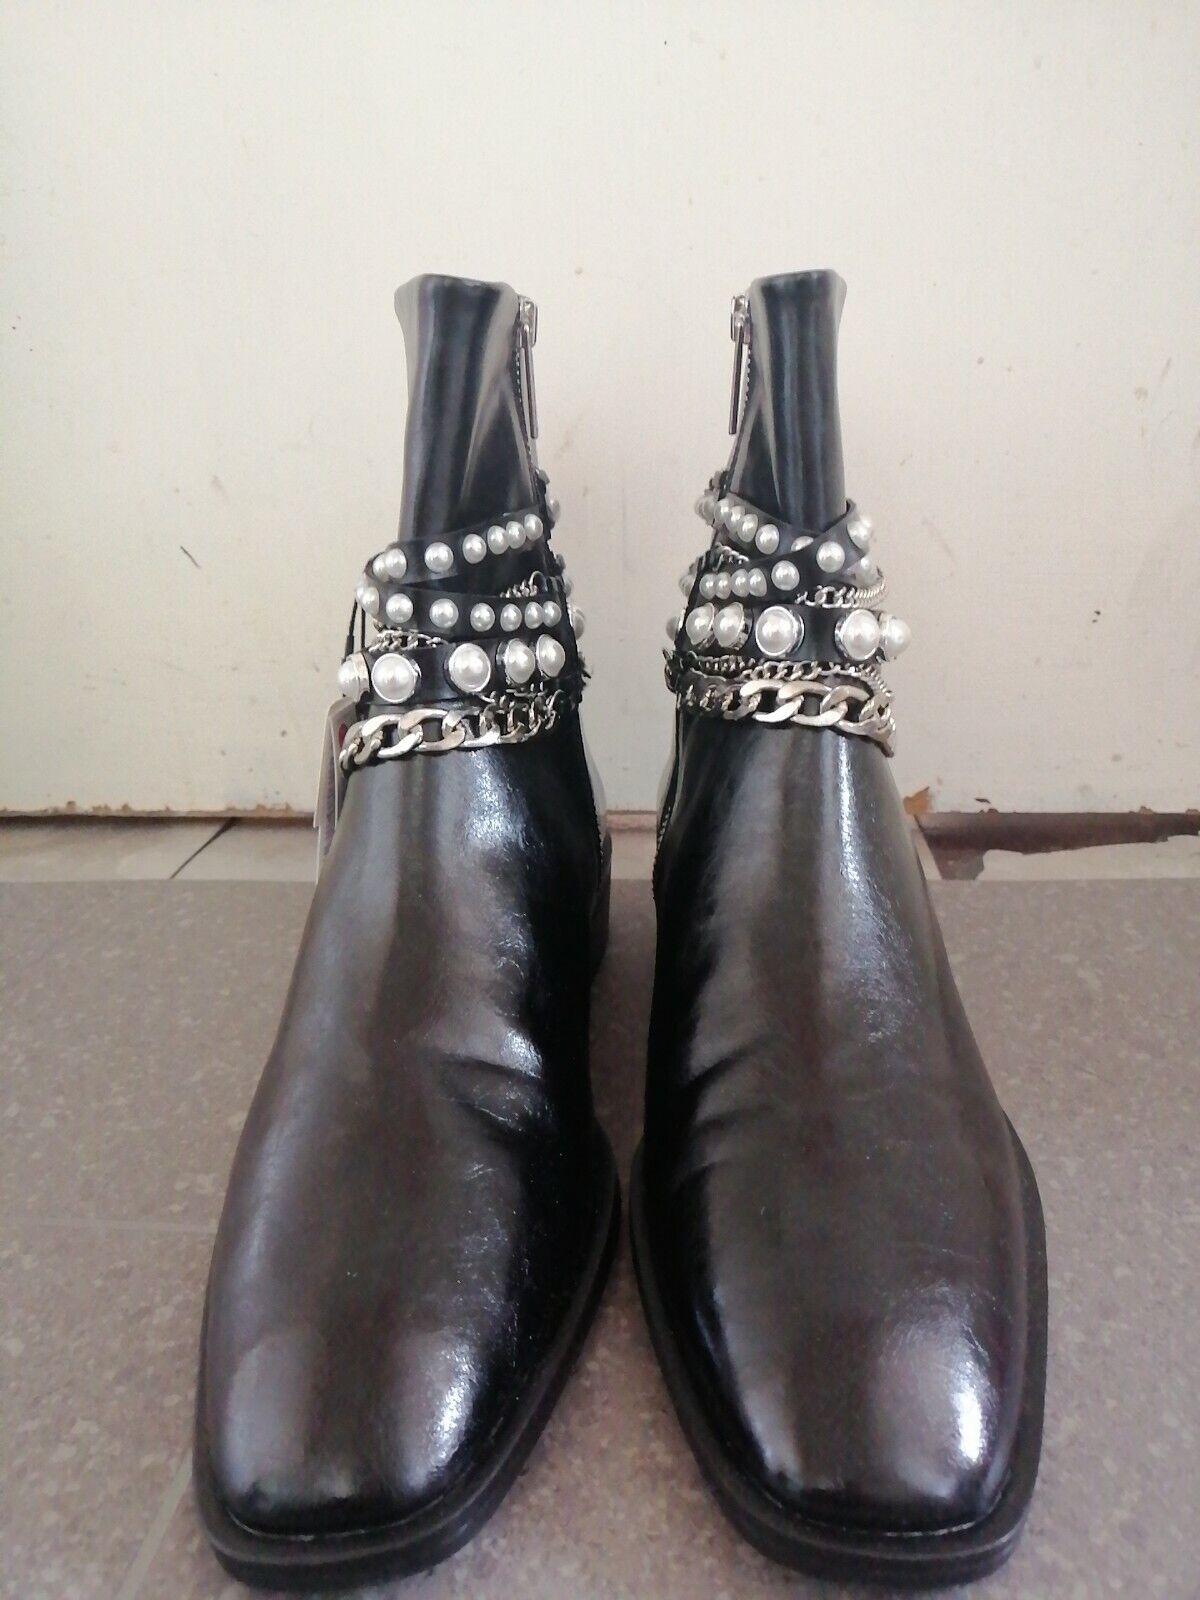 BNWT ZARA Black Flat Ankle Boots with Pearl Beads and Chains Size 7/40